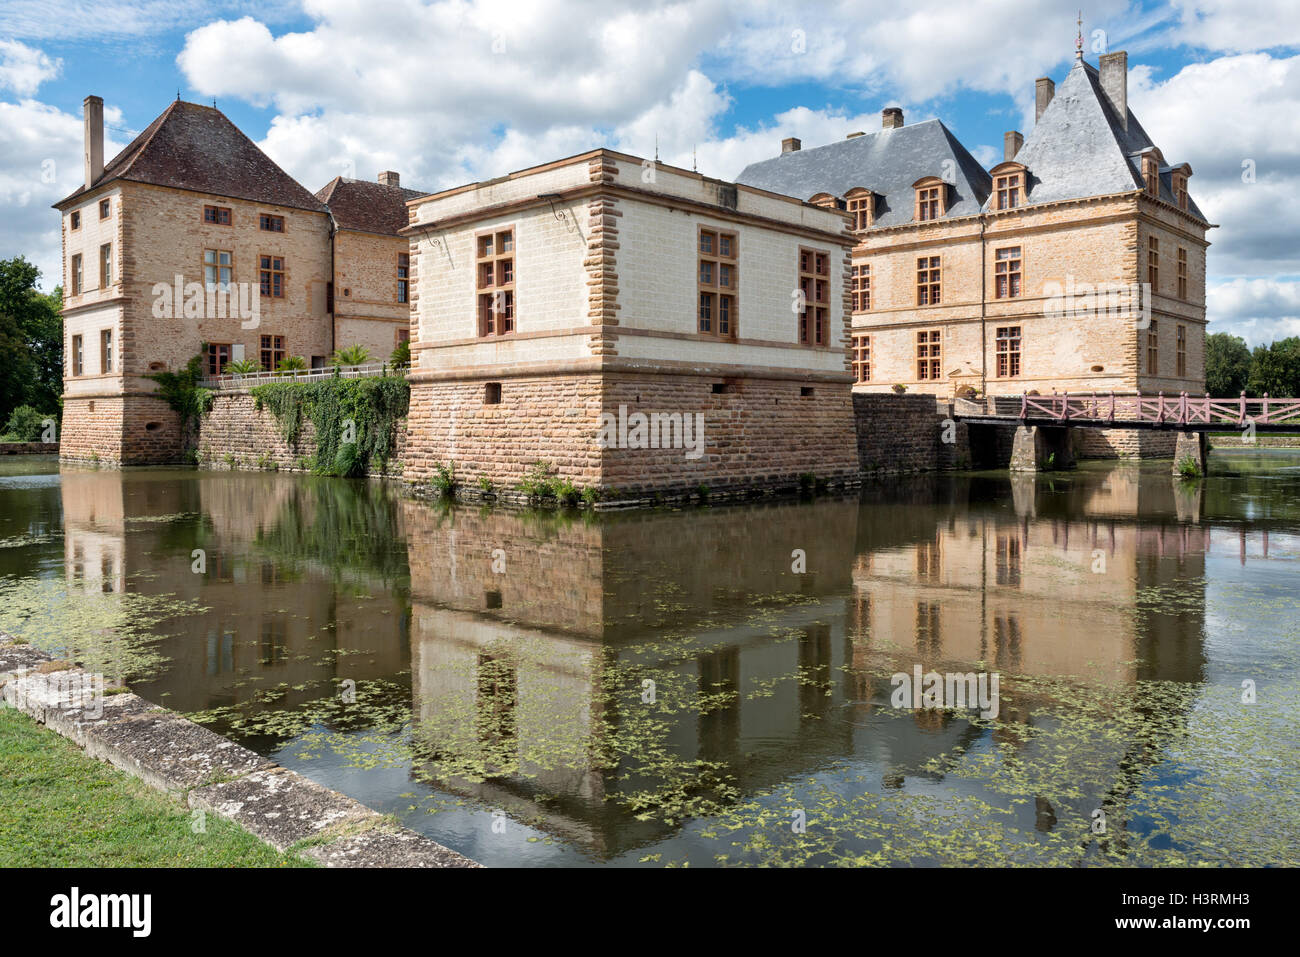 A view from the moat of the historic burgundian renaissance Chateau de Cormatin on a sunny Summer day Stock Photo